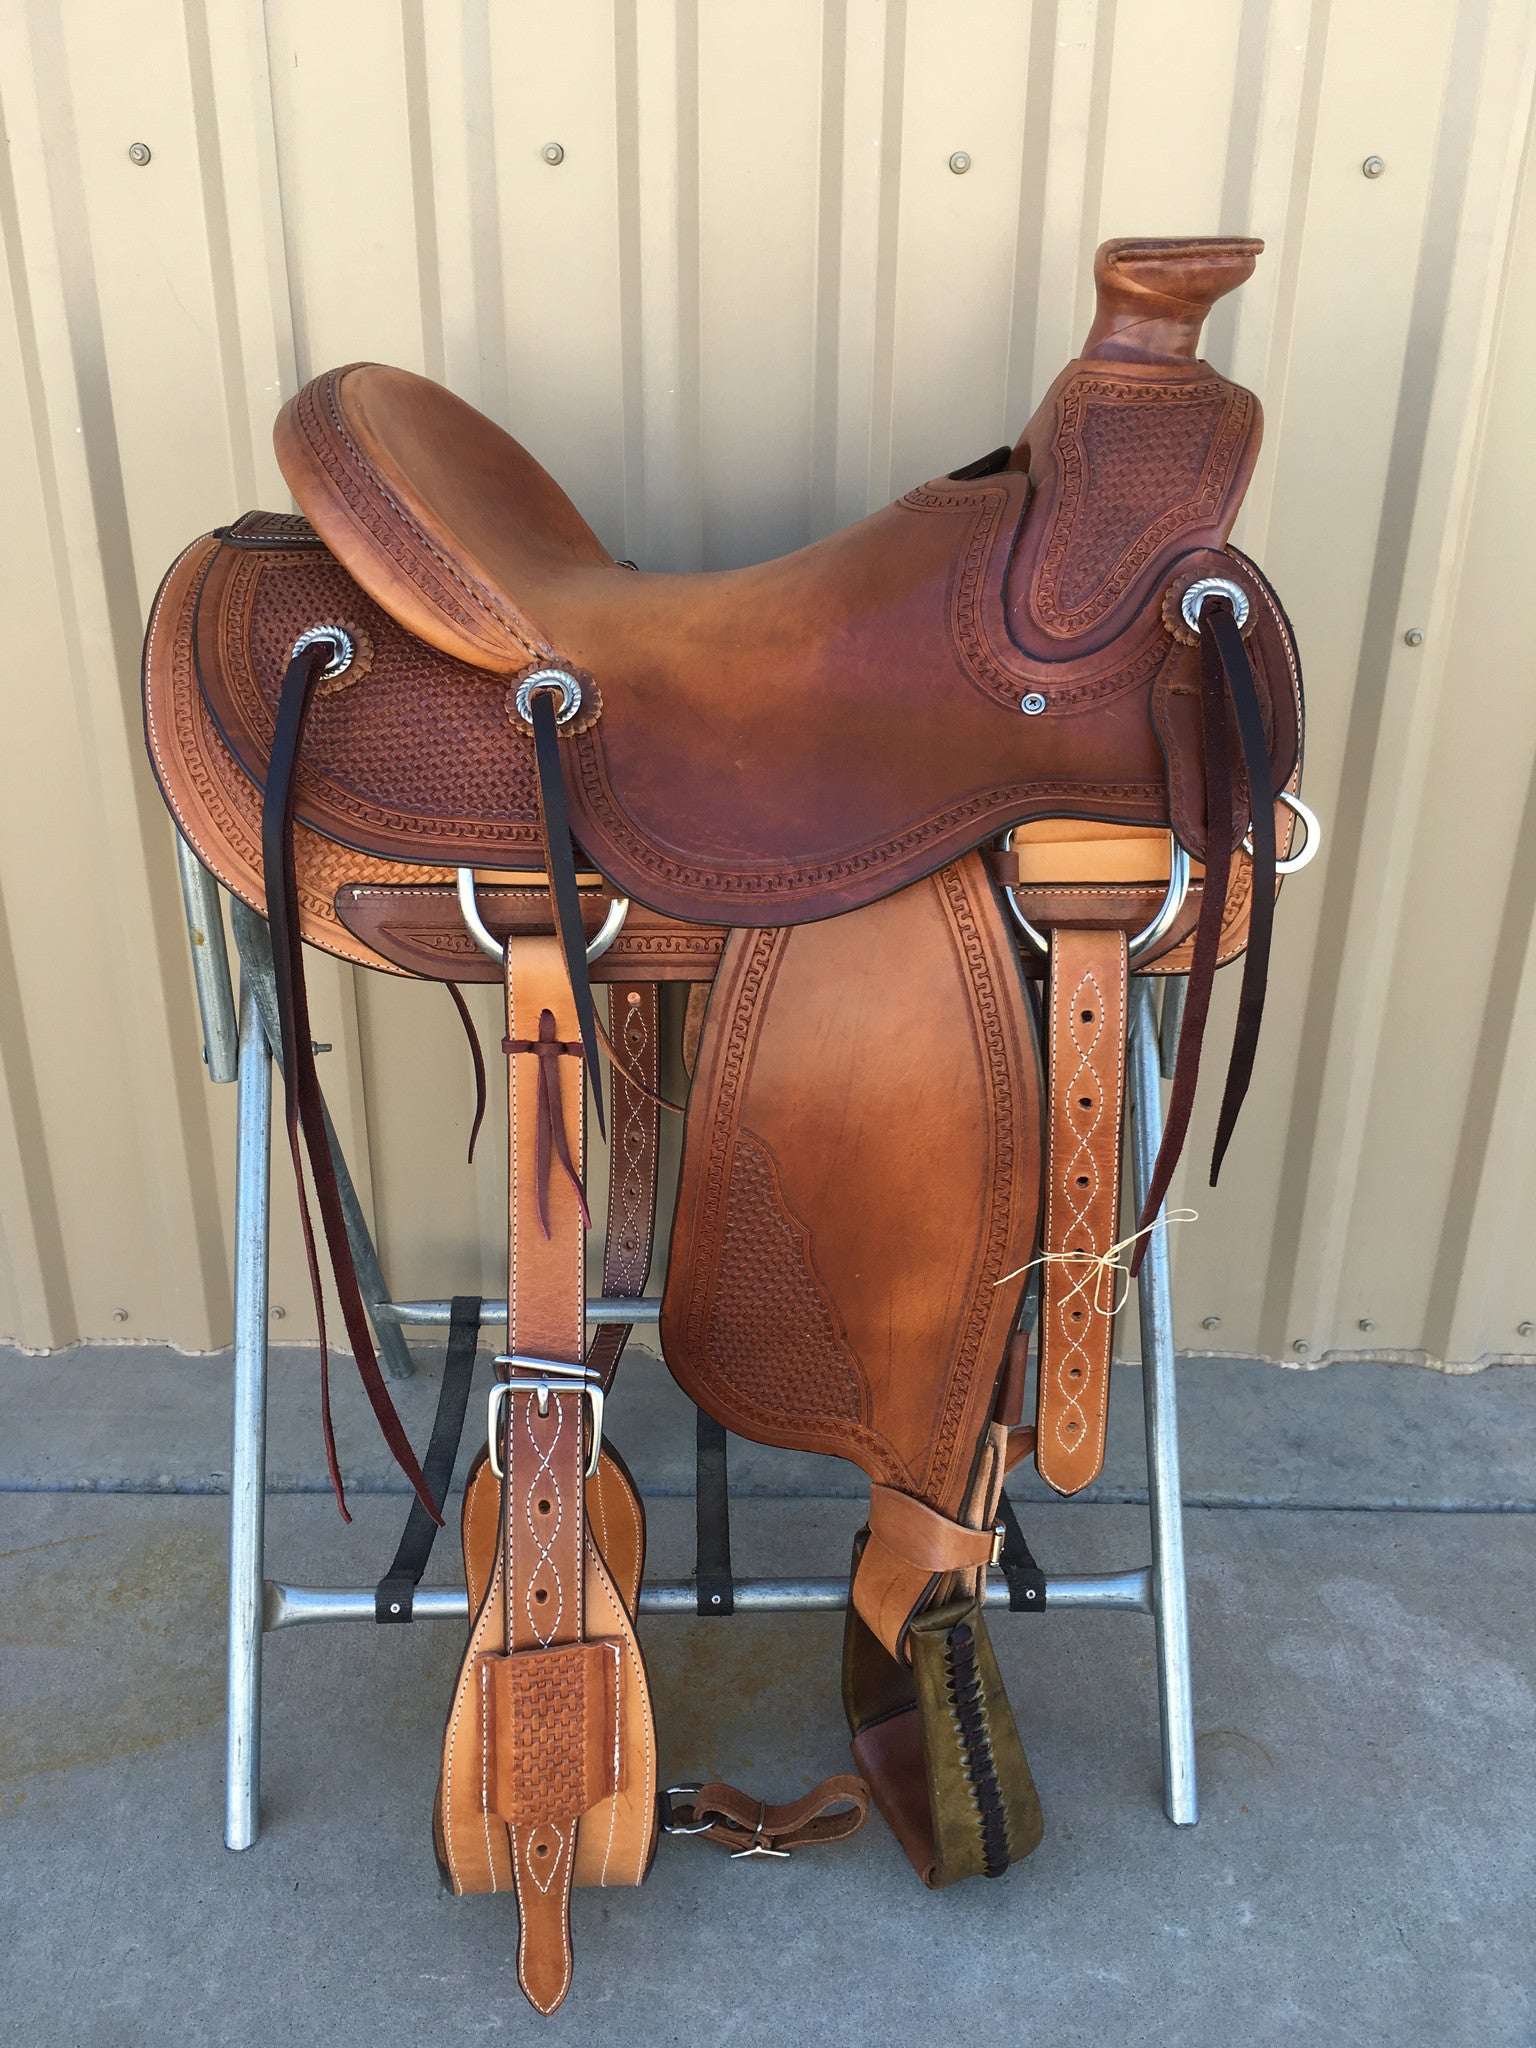 Corriente Ranch Wade Saddle SB433 - The Sale Barn - 1